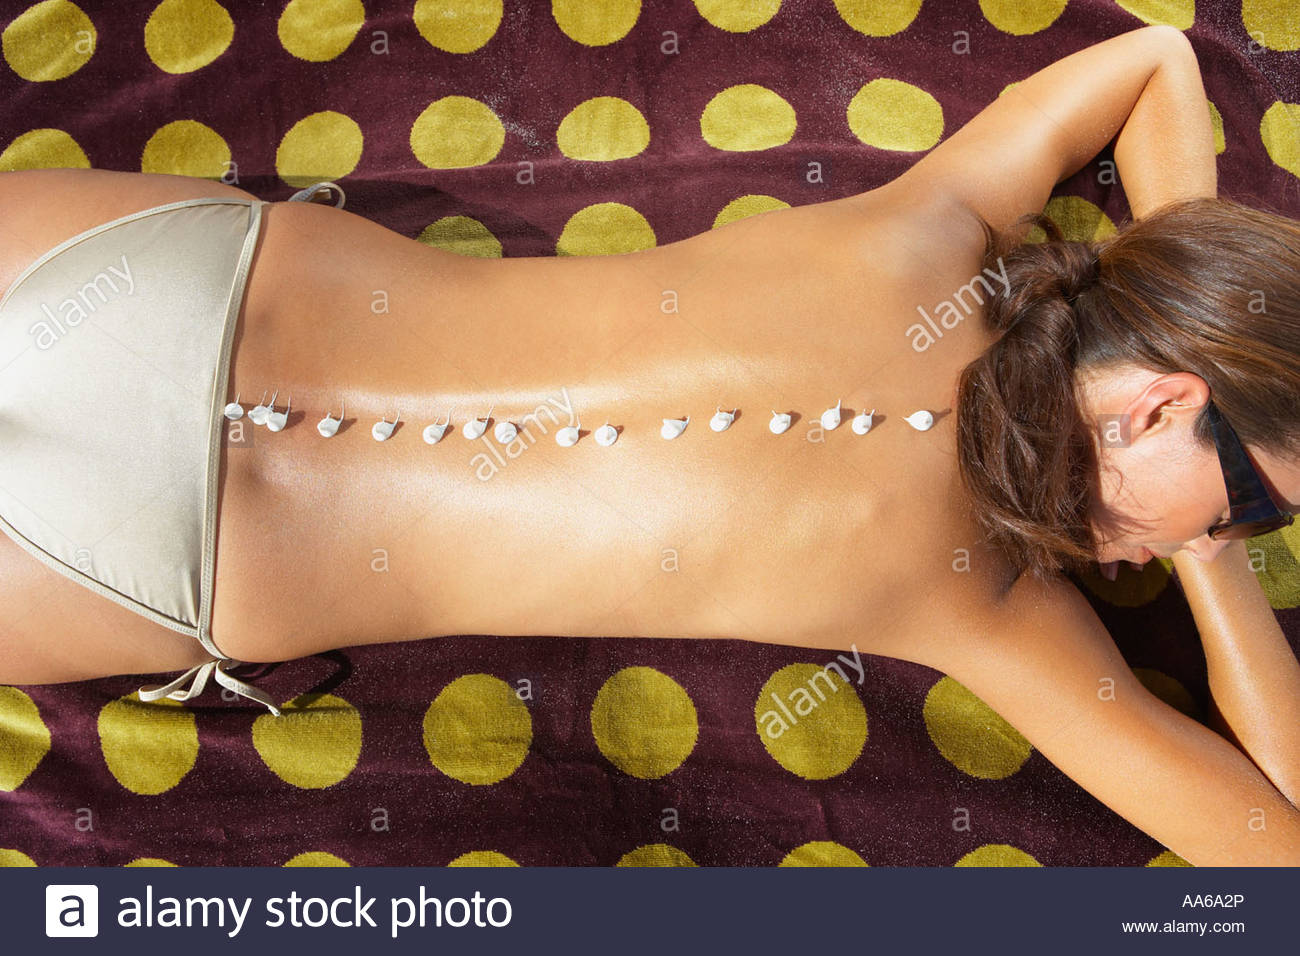 Woman lying down on beach towel with suntan lotion on back - Stock Image